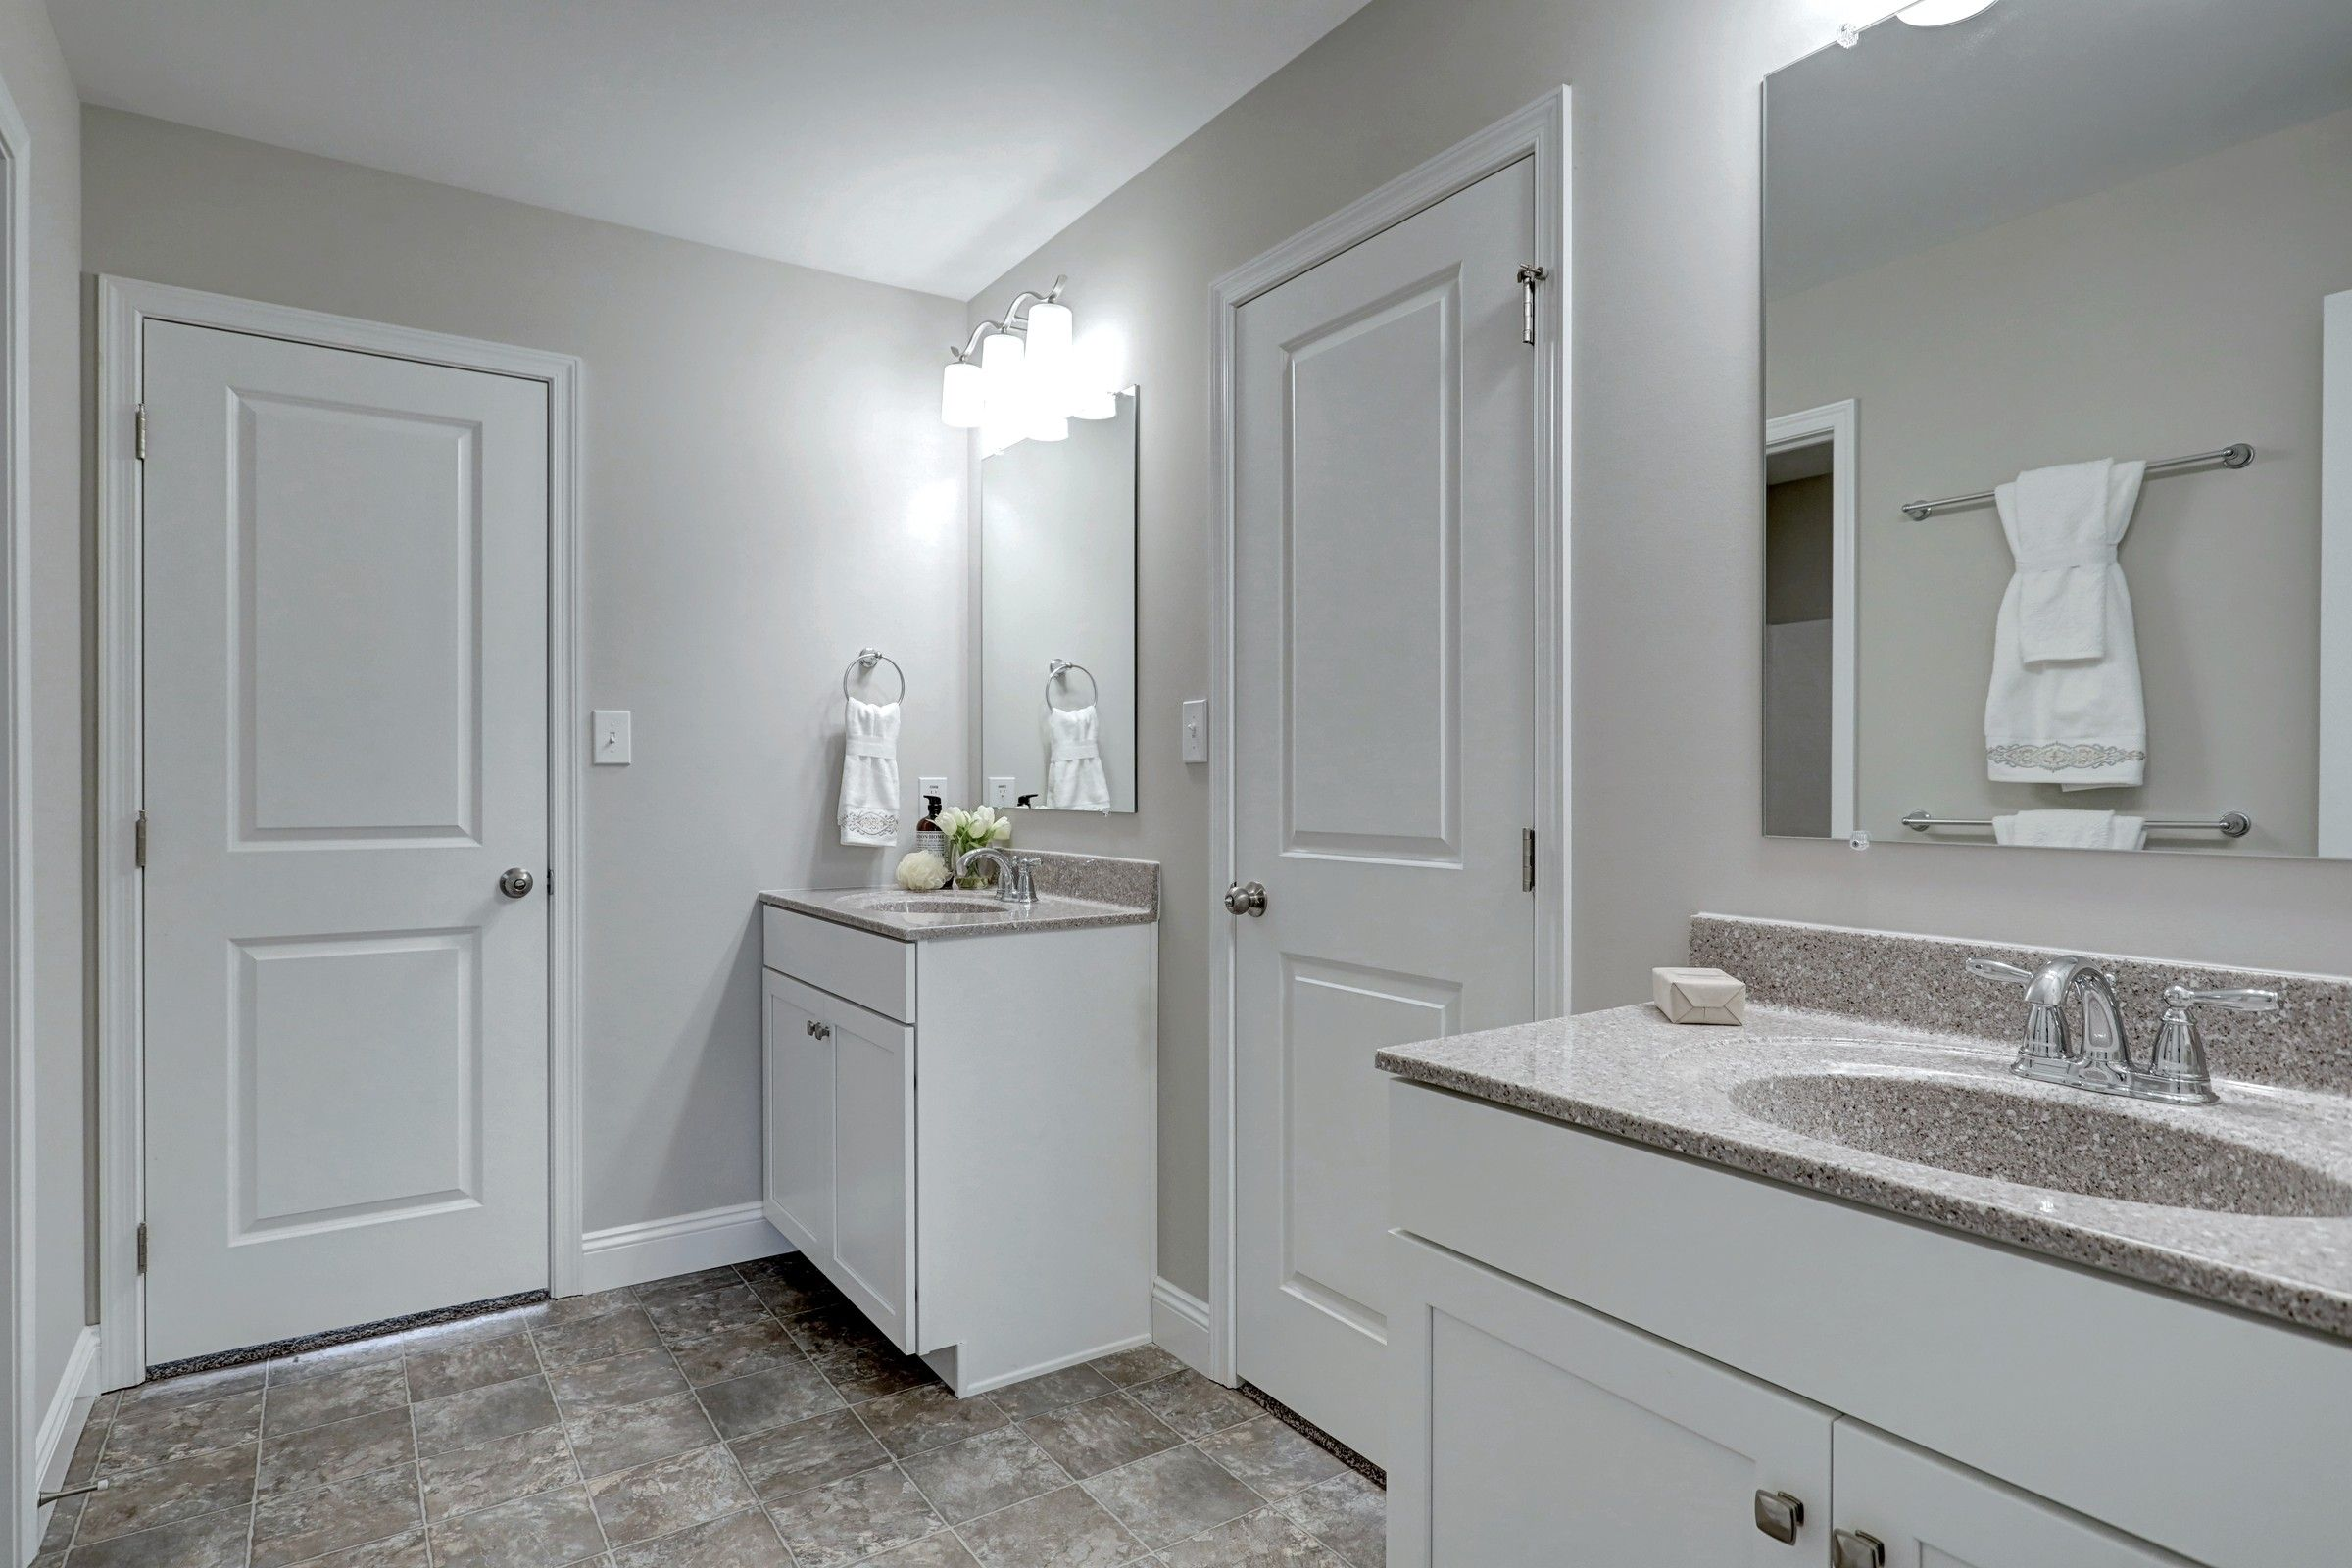 Bathroom featured in the Oxford Vintage By Keystone Custom Homes in Lancaster, PA